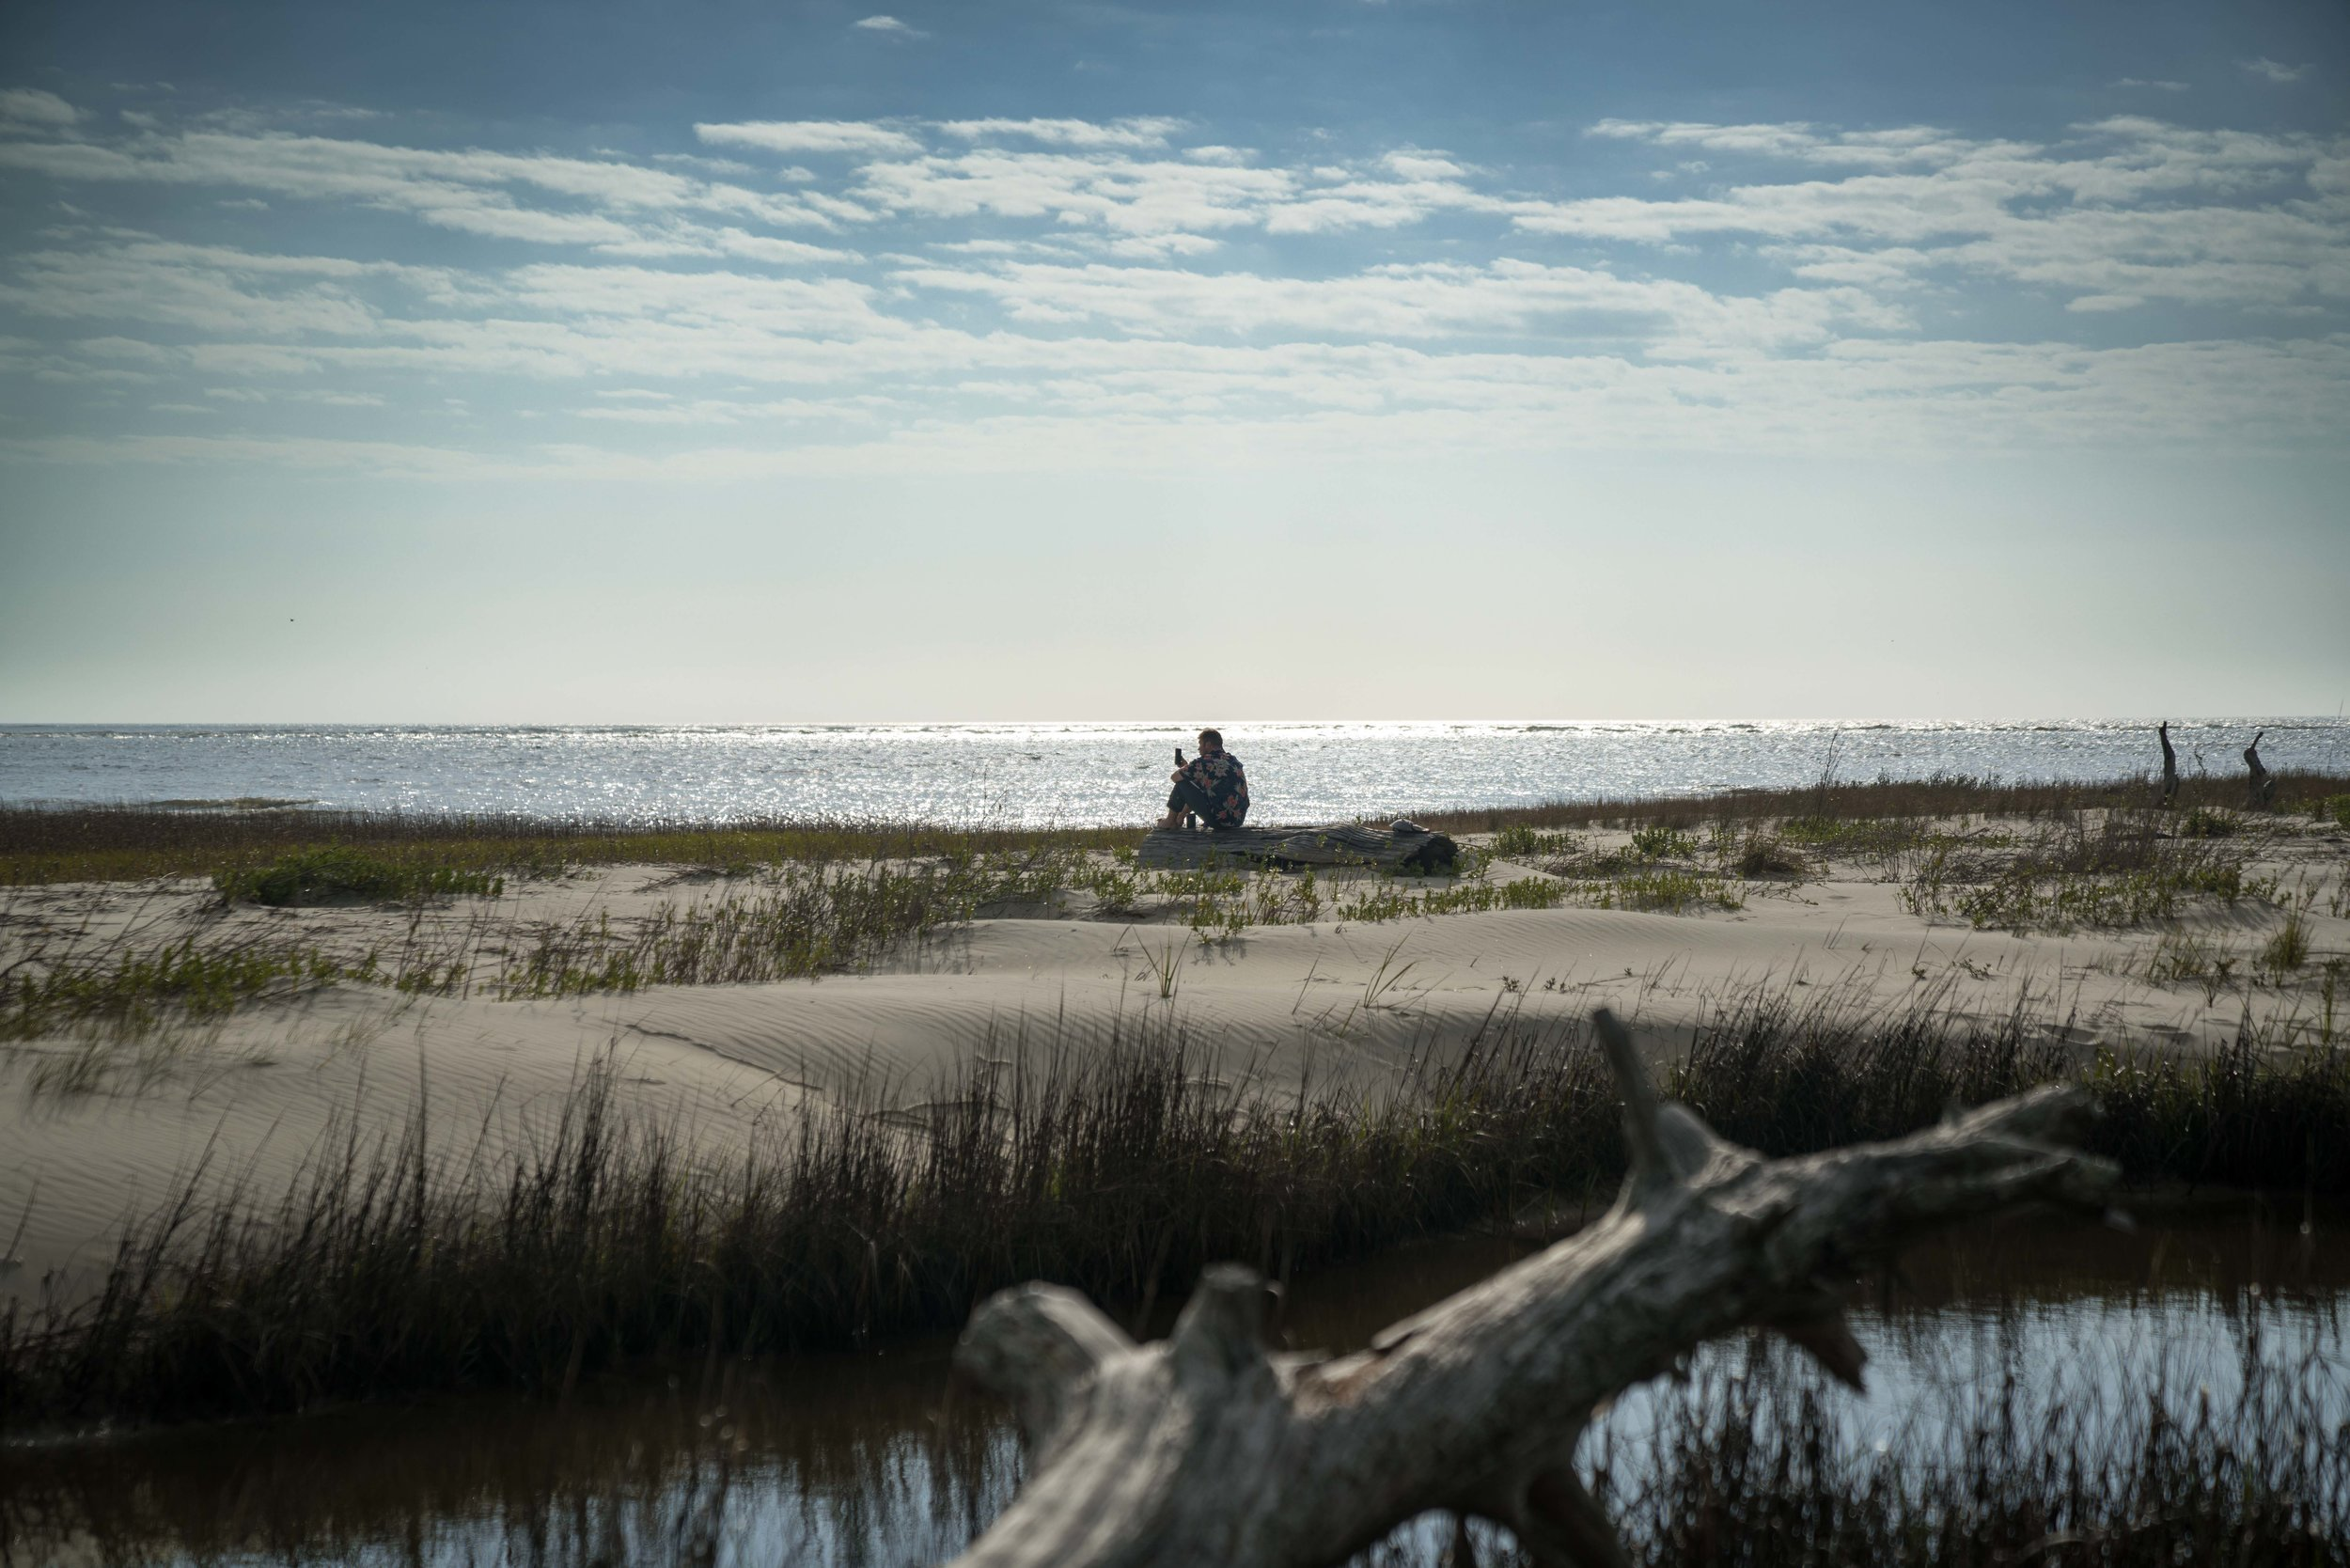 Solo wanderer on Little Tybee Island via micahdeyoung.com